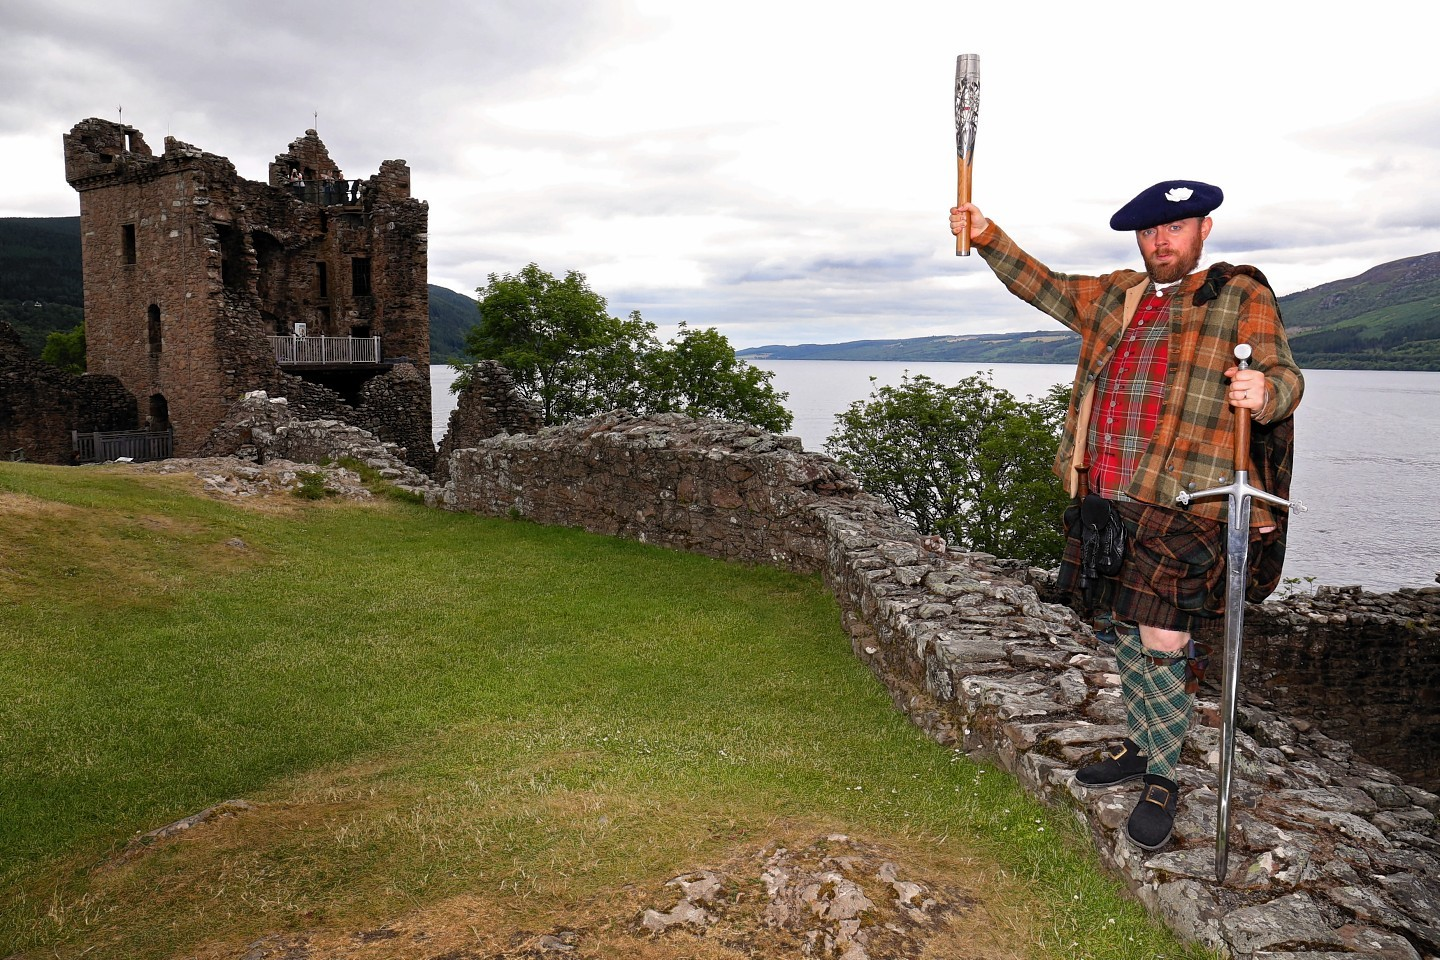 Baton reaches Urquhart Castle on the shores of Loch Ness